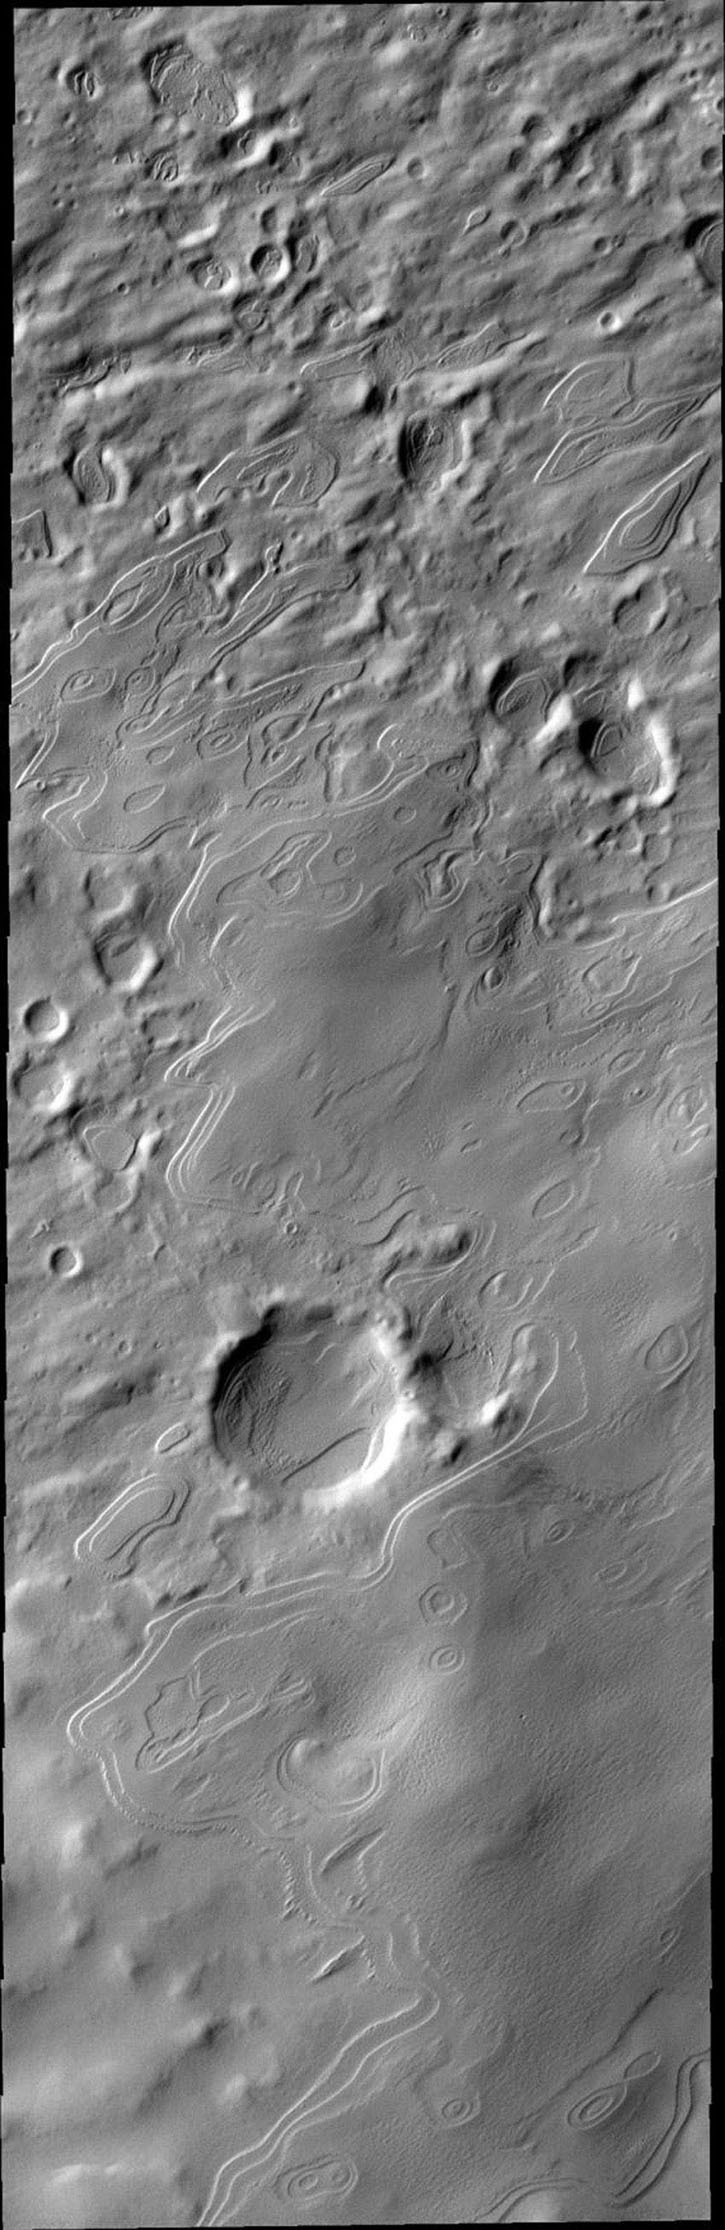 This image from NASA's Mars Odyssey spacecraft shows layered mounds are south polar layered deposits that are no longer part of Mars' south polar cap. Their location marks a time when the permanent polar cap was more extensive.